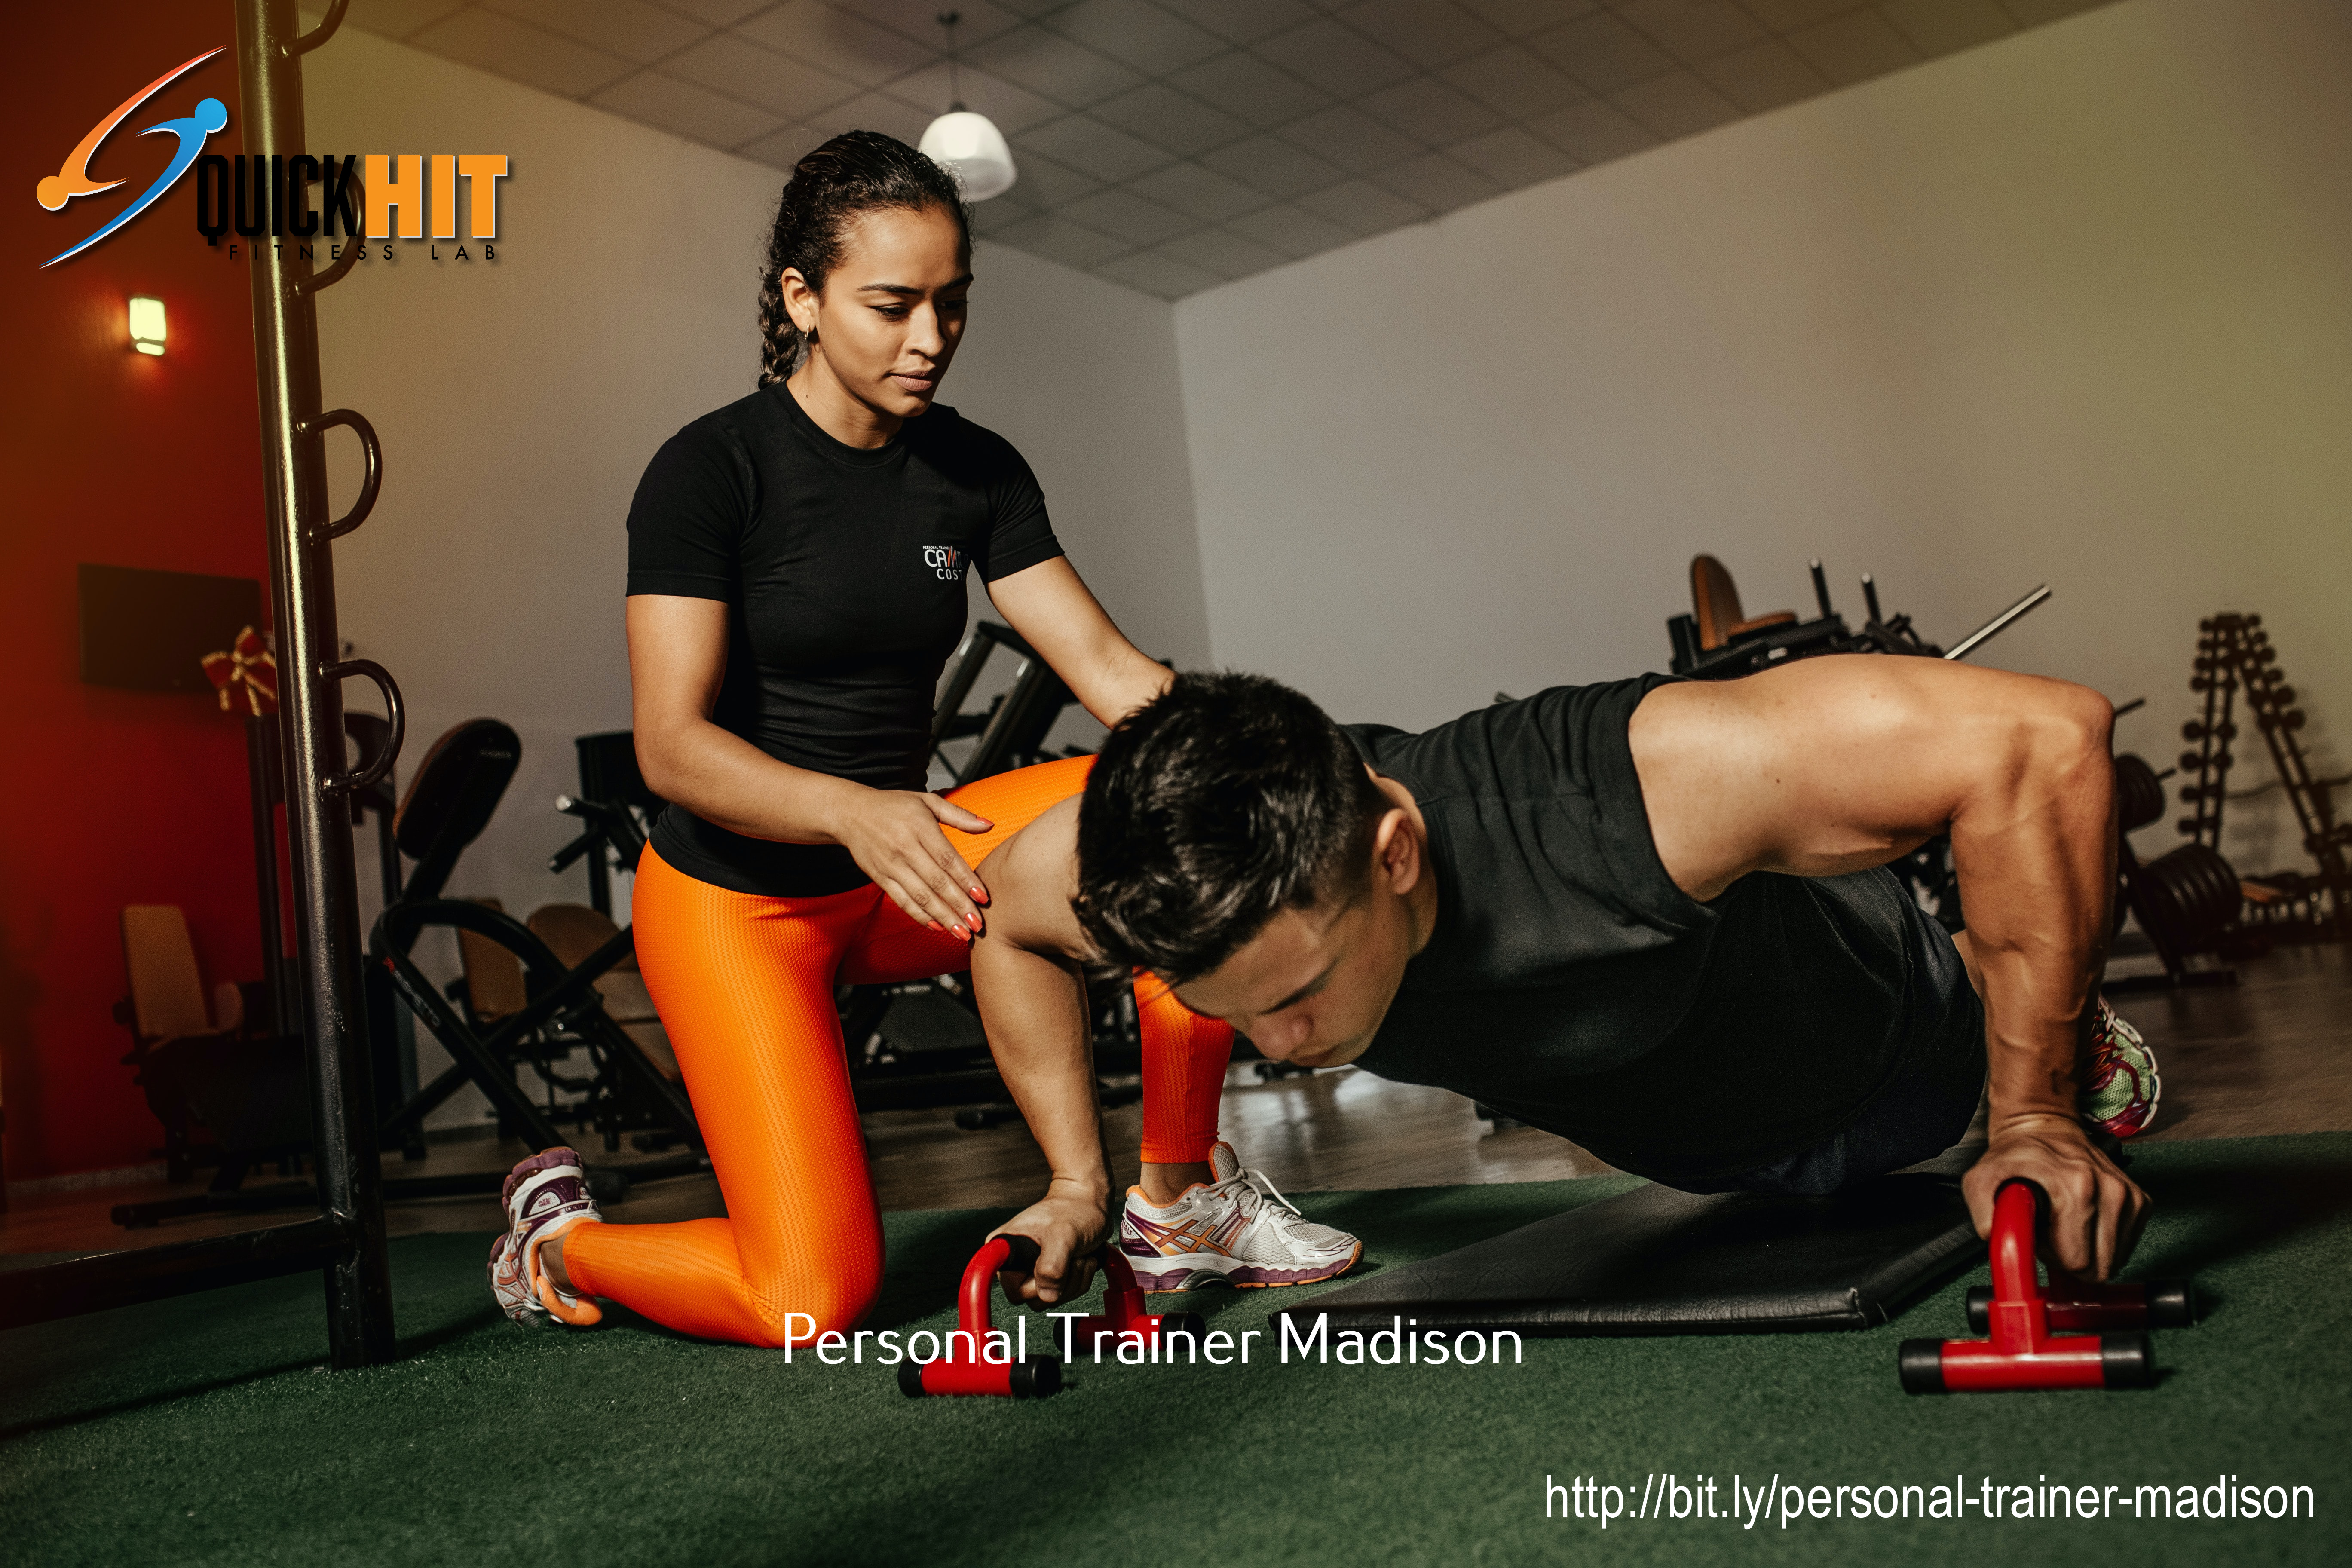 QuickHIT Fitness Lab-Madison Guides People on How They Can Train at Home